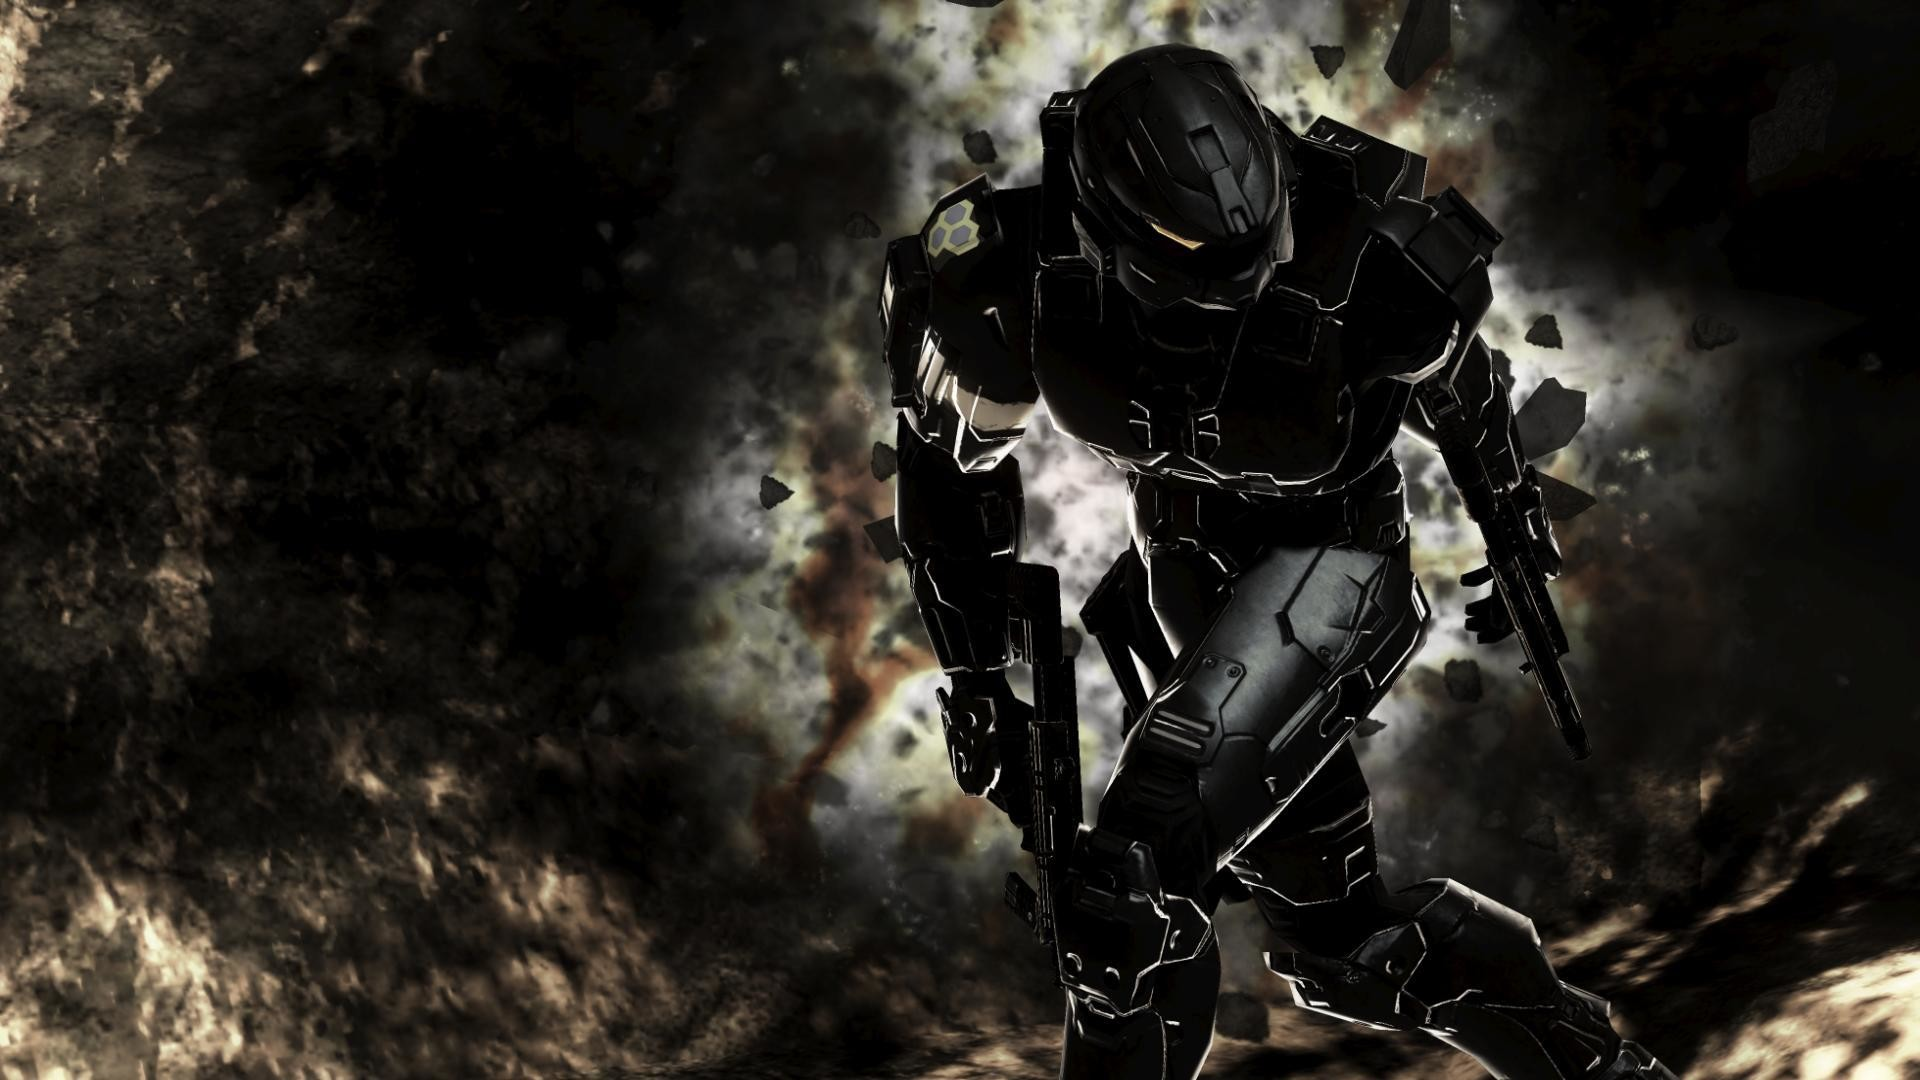 1920x1080 Wallpapers For > Cool Halo 3 Wallpapers